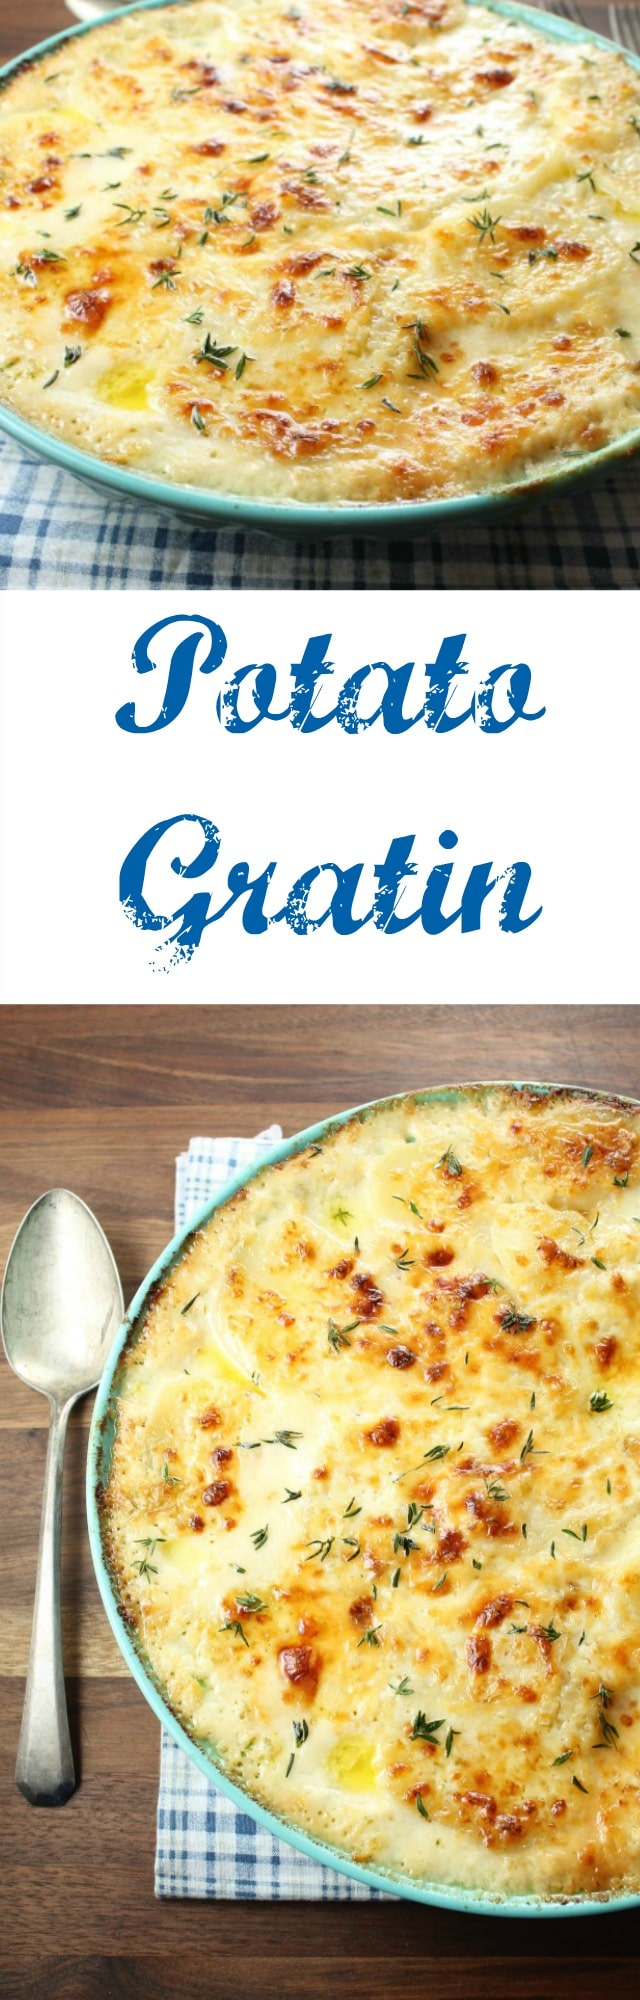 garlic grater plate instructions